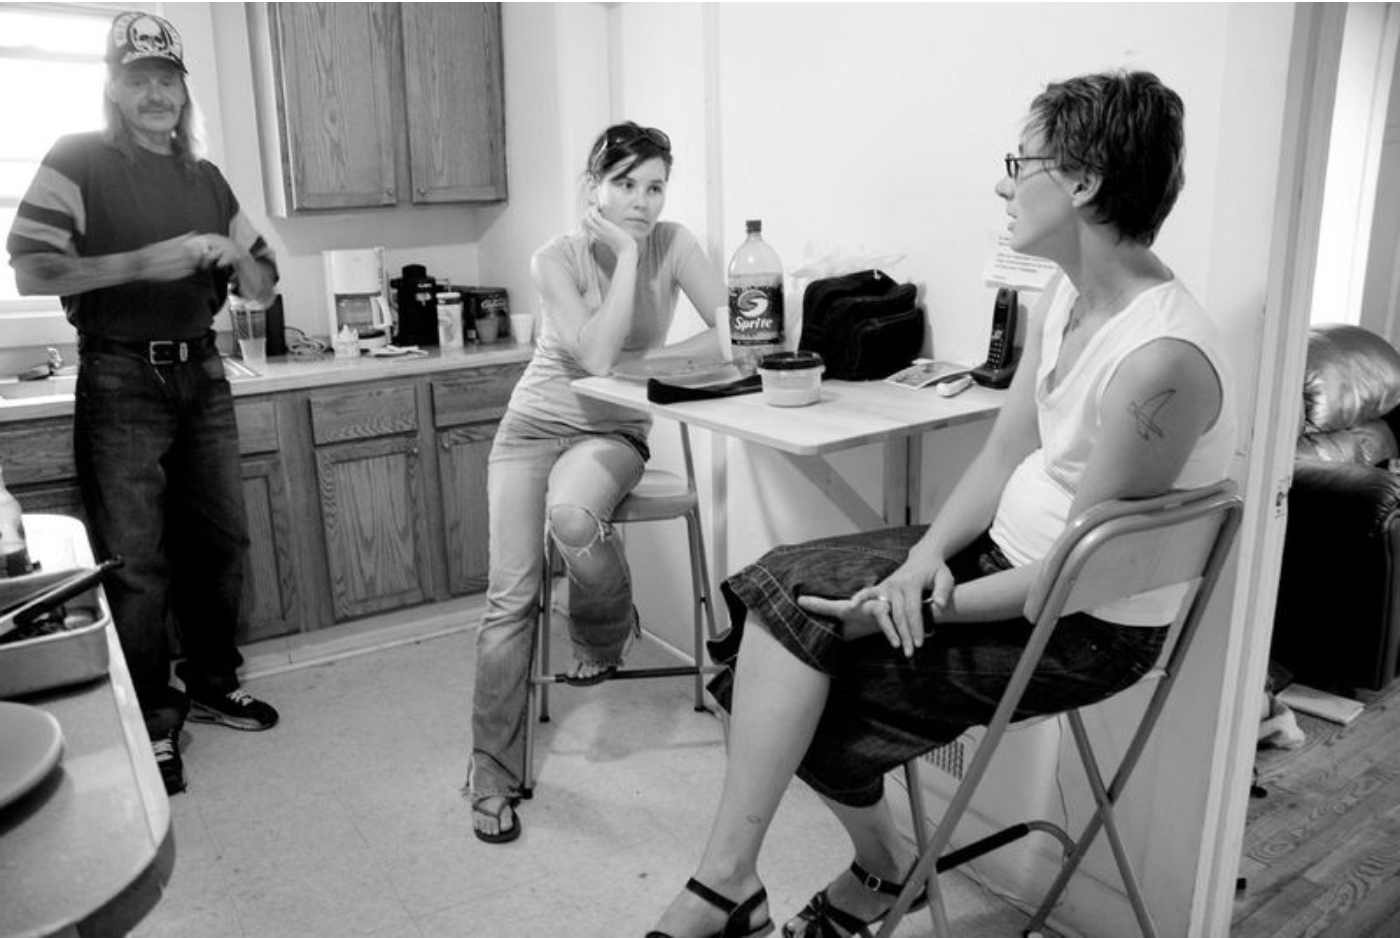 2008: A snapshot of daily life within the Boiler Room house with Jen discipling Sarah amongst the neighbors they had invited to live with them.